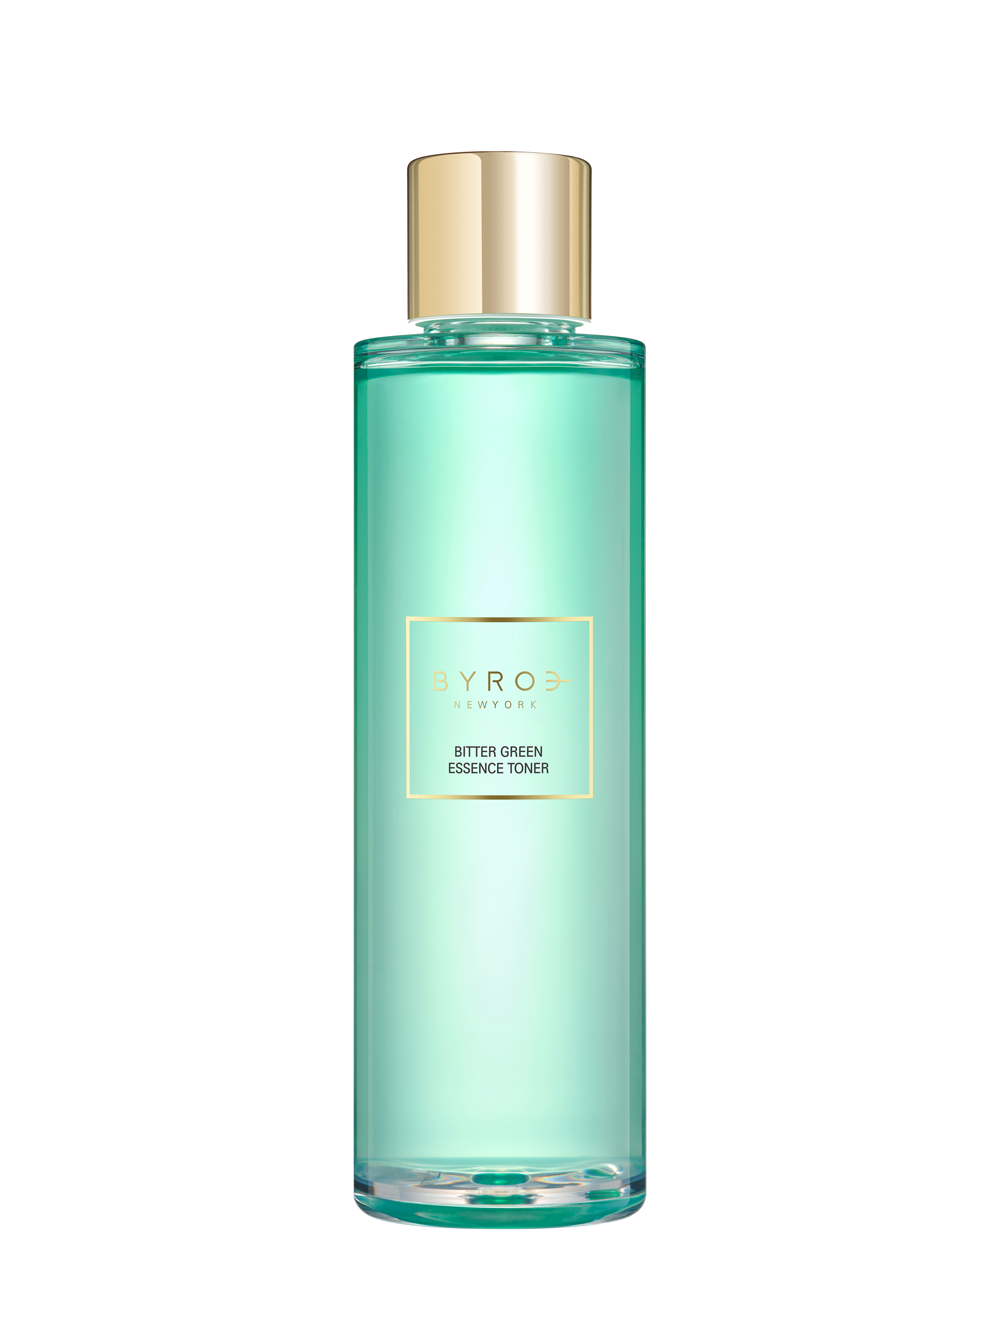 BITTER GREEN ESSENCE TONER